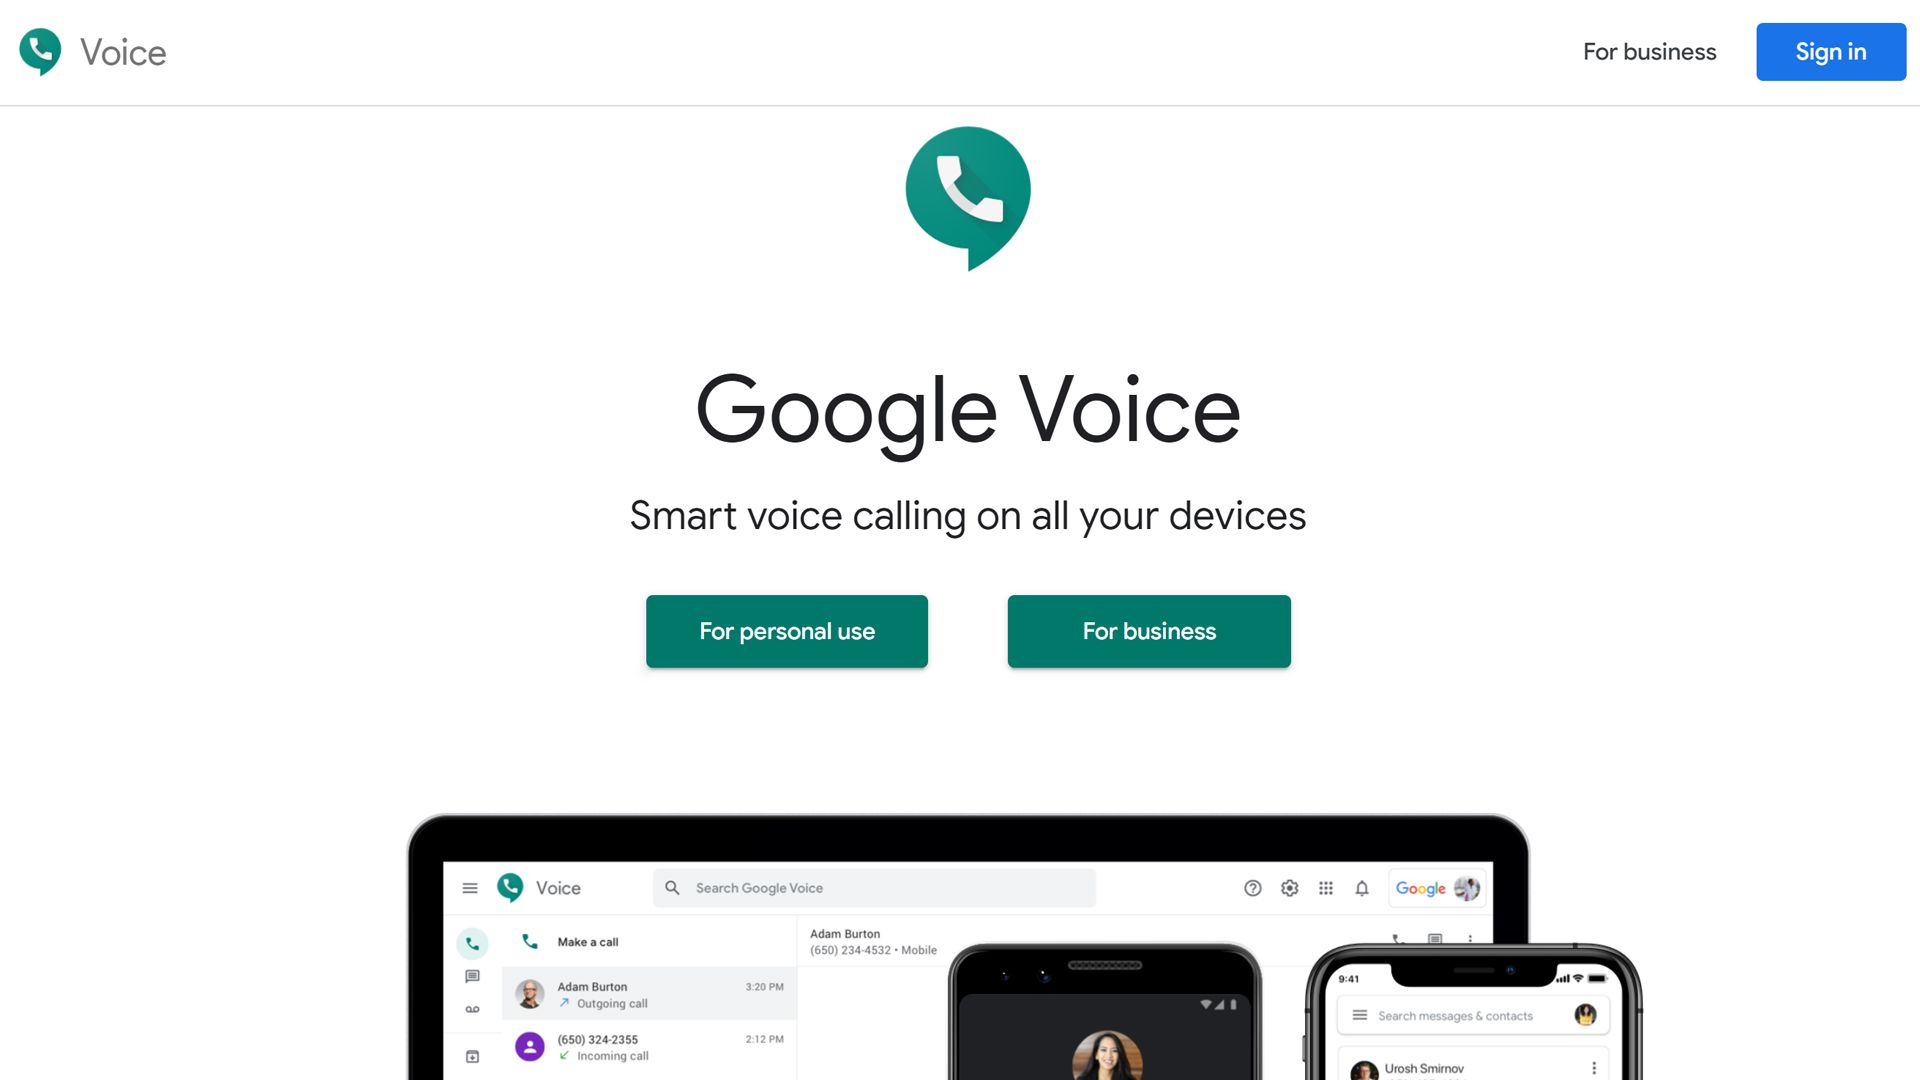 Google Voice website for making calls and recording them.